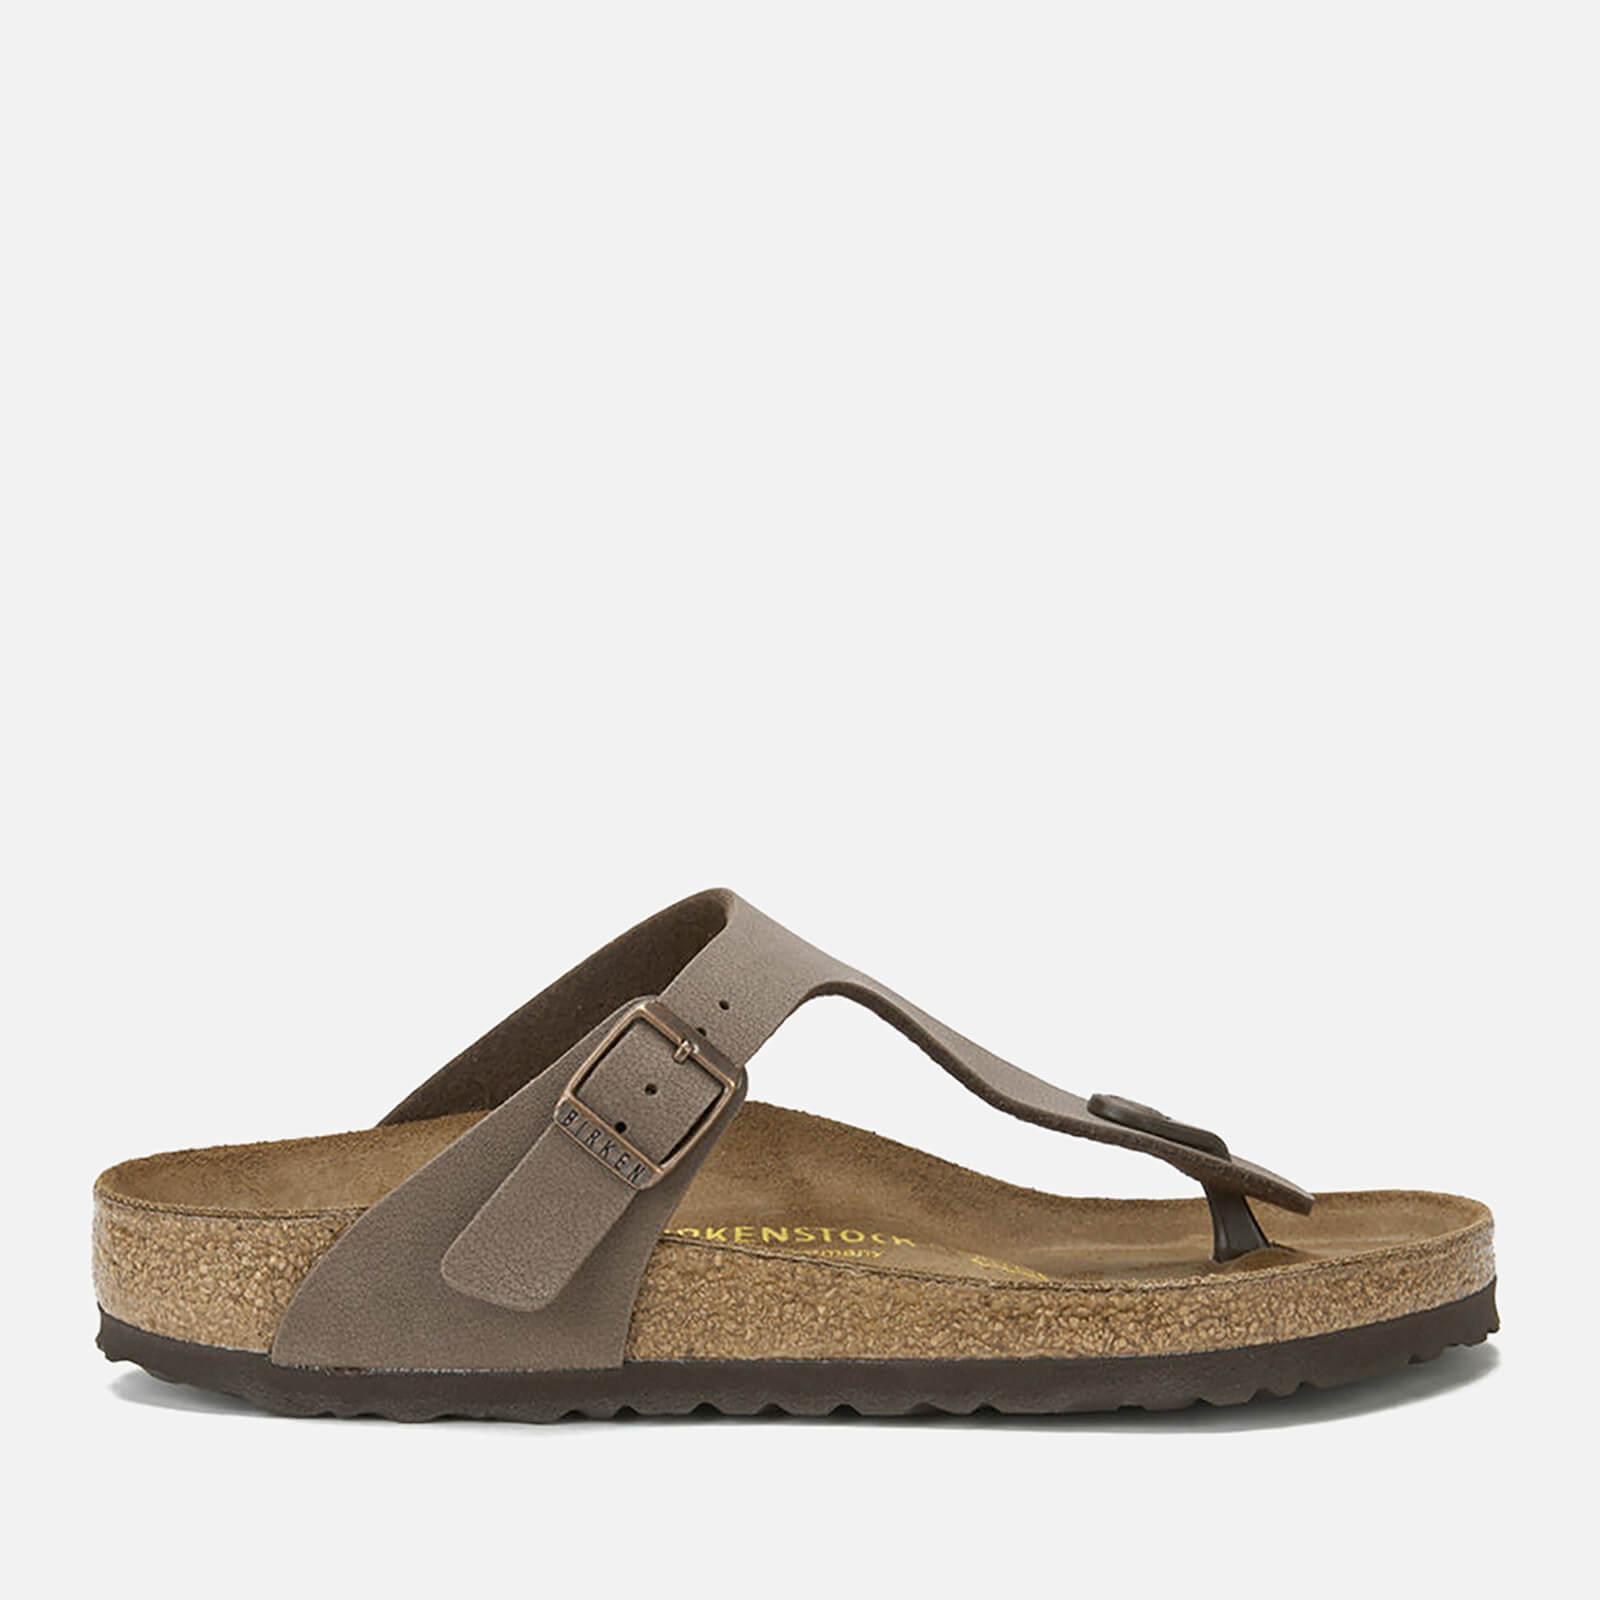 Birkenstock Women's Gizeh Toe-Post Leather Sandals - Mocha - EU 37/UK 4.5